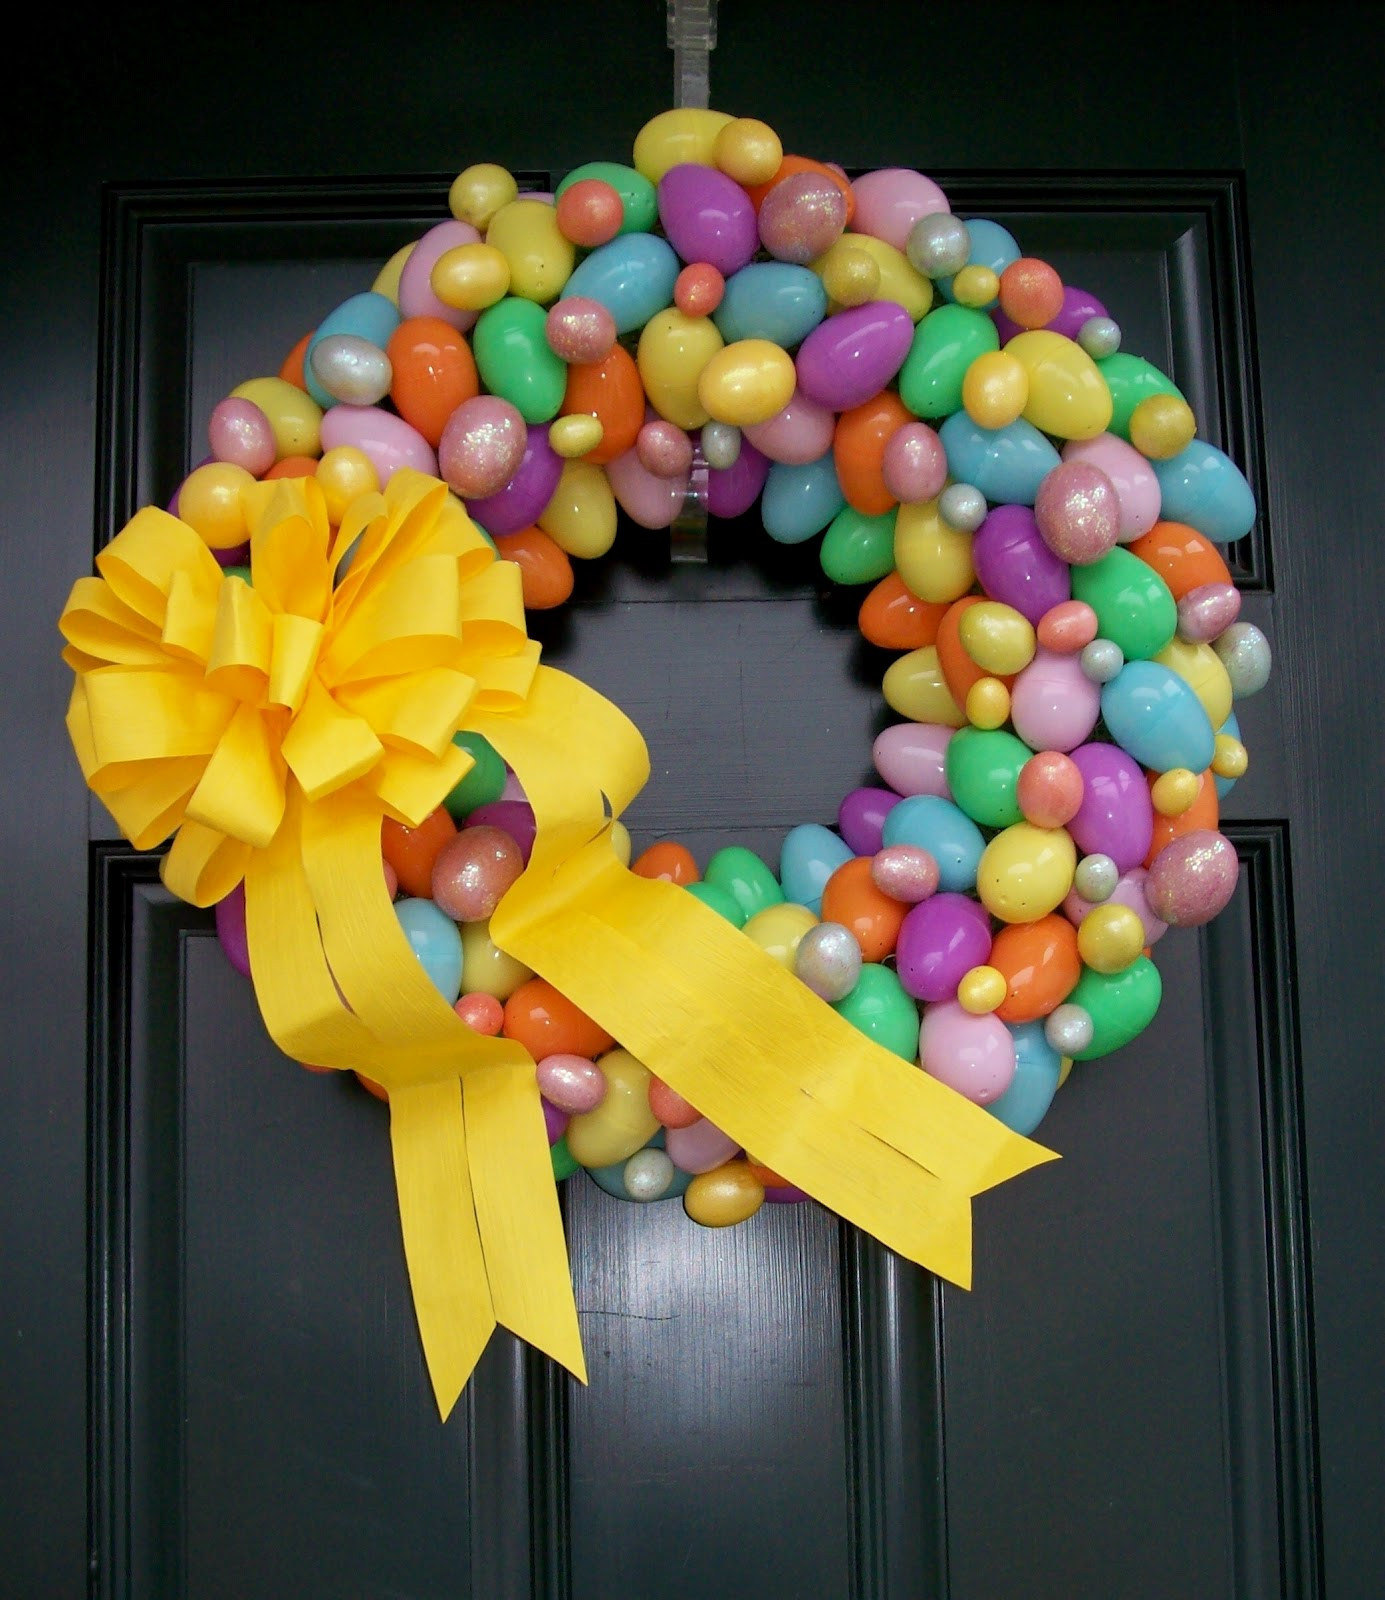 Dejavu*Crafts: 12 SUper CUte Easter Wreaths Ideas